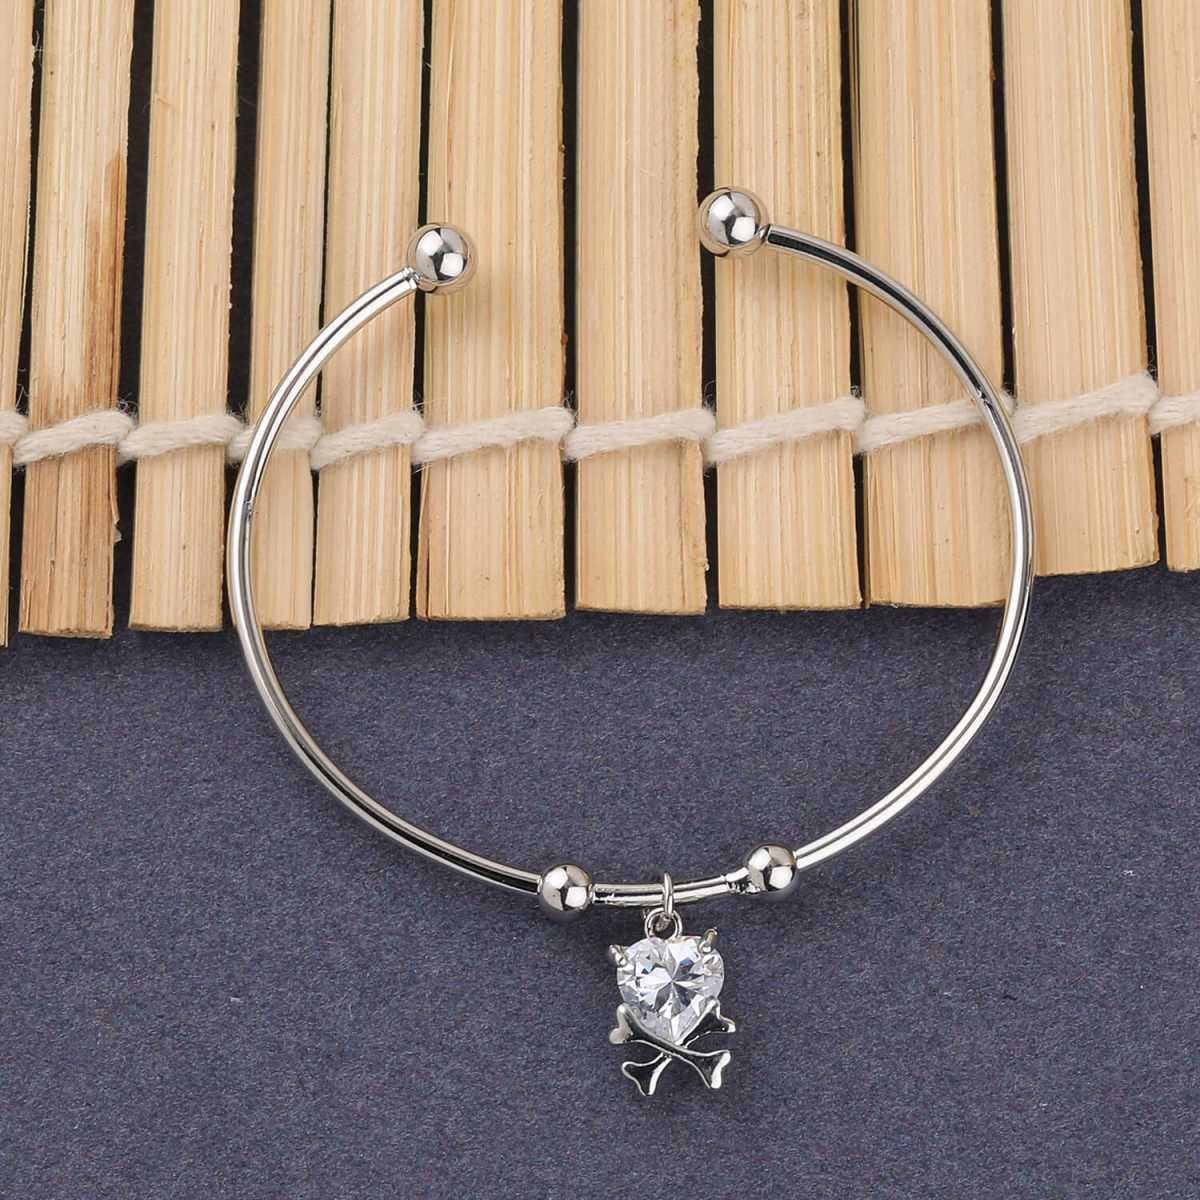 SILVER SHINE Antique Designer Adjustable Bracelet With Diamond For Women Girls